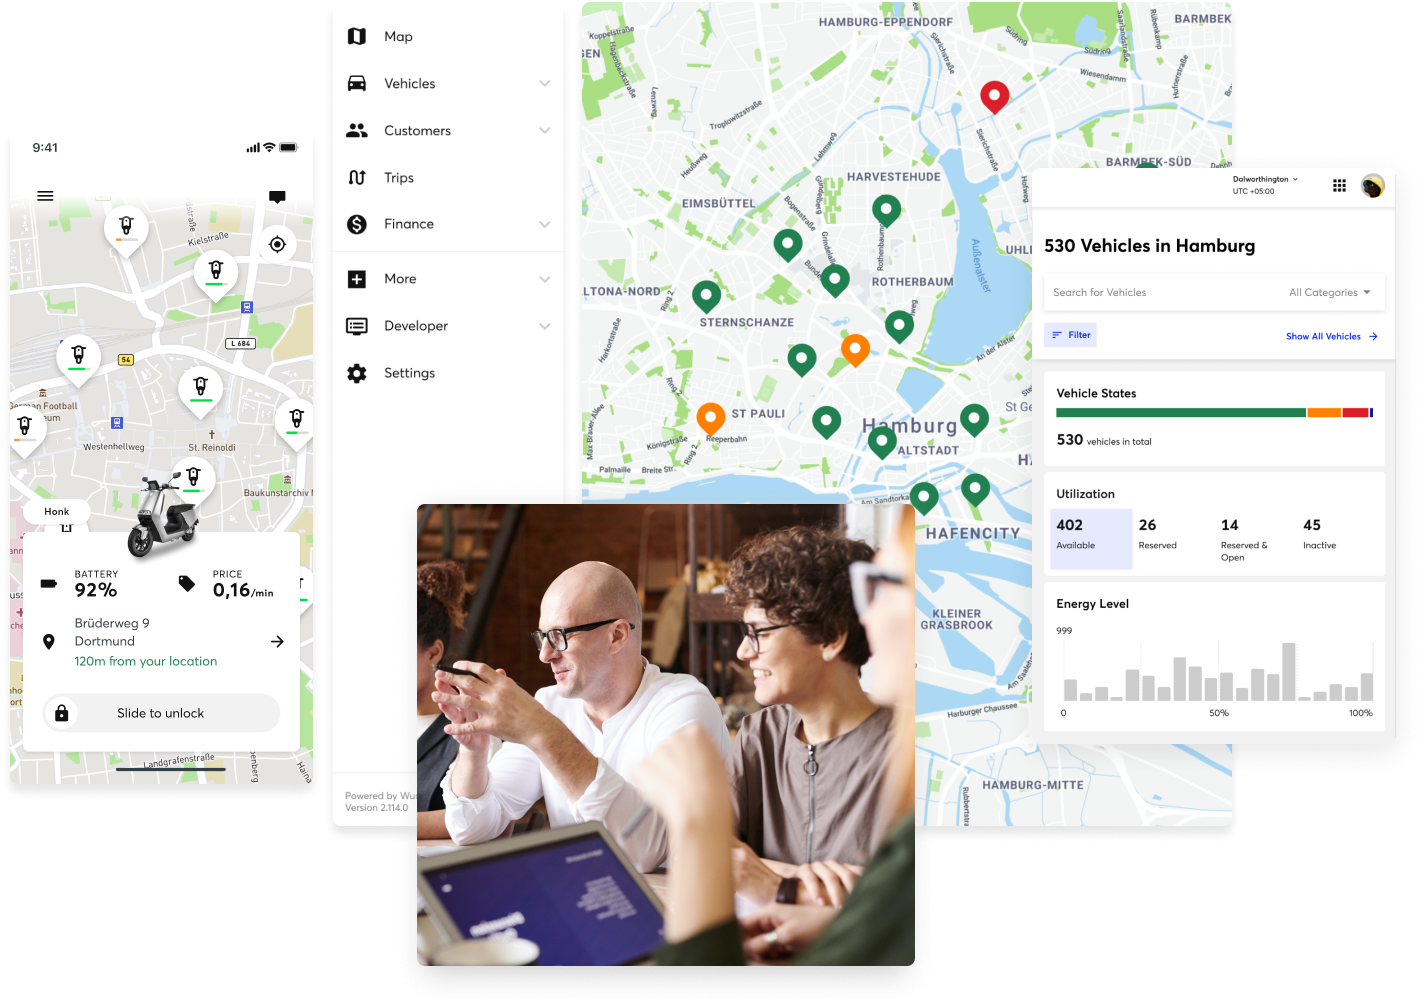 A showcase of Wunder app screenshots plus an image of a working place where workers are engaged in a discussion.